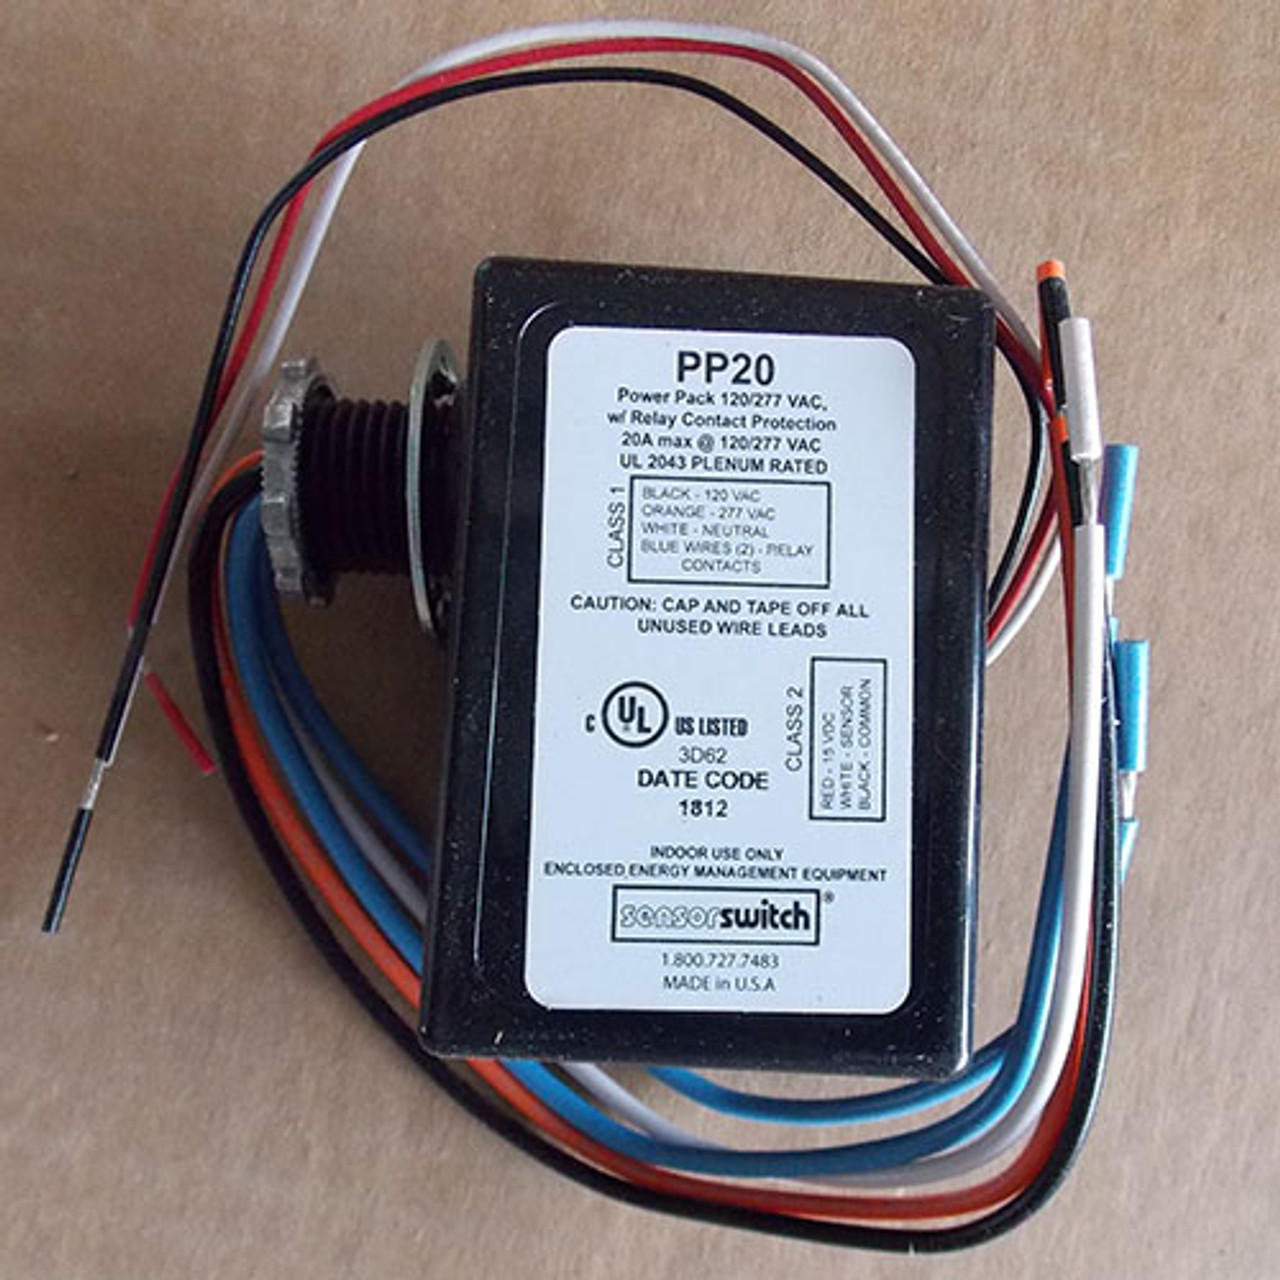 SensorSwitch PP20 Powerpack, Relay Circuit Protection 120/277V 20A - New